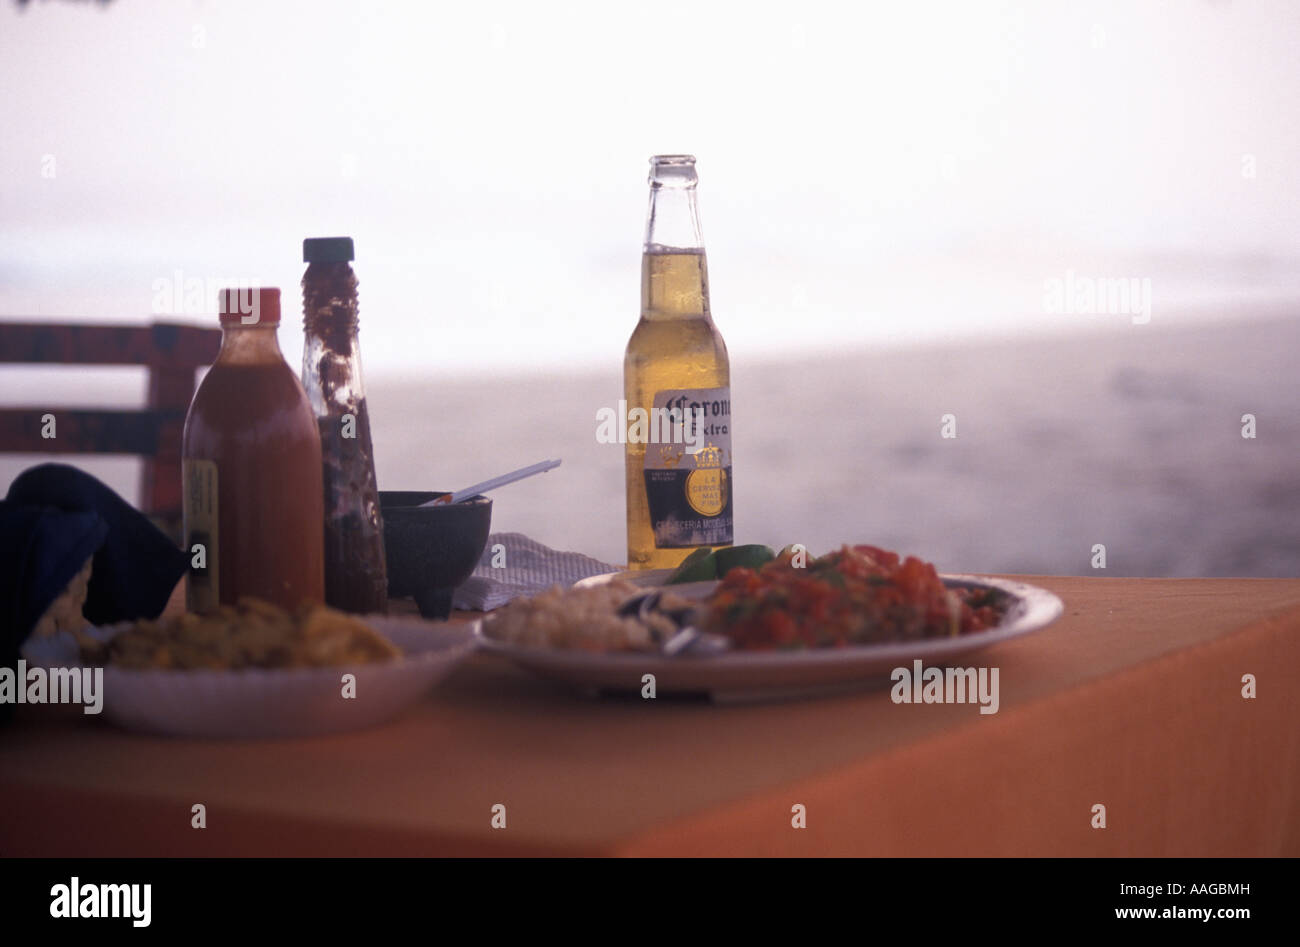 Mexican food served in a beach restaurant Playa Azui Michoacan Mexico - Stock Image